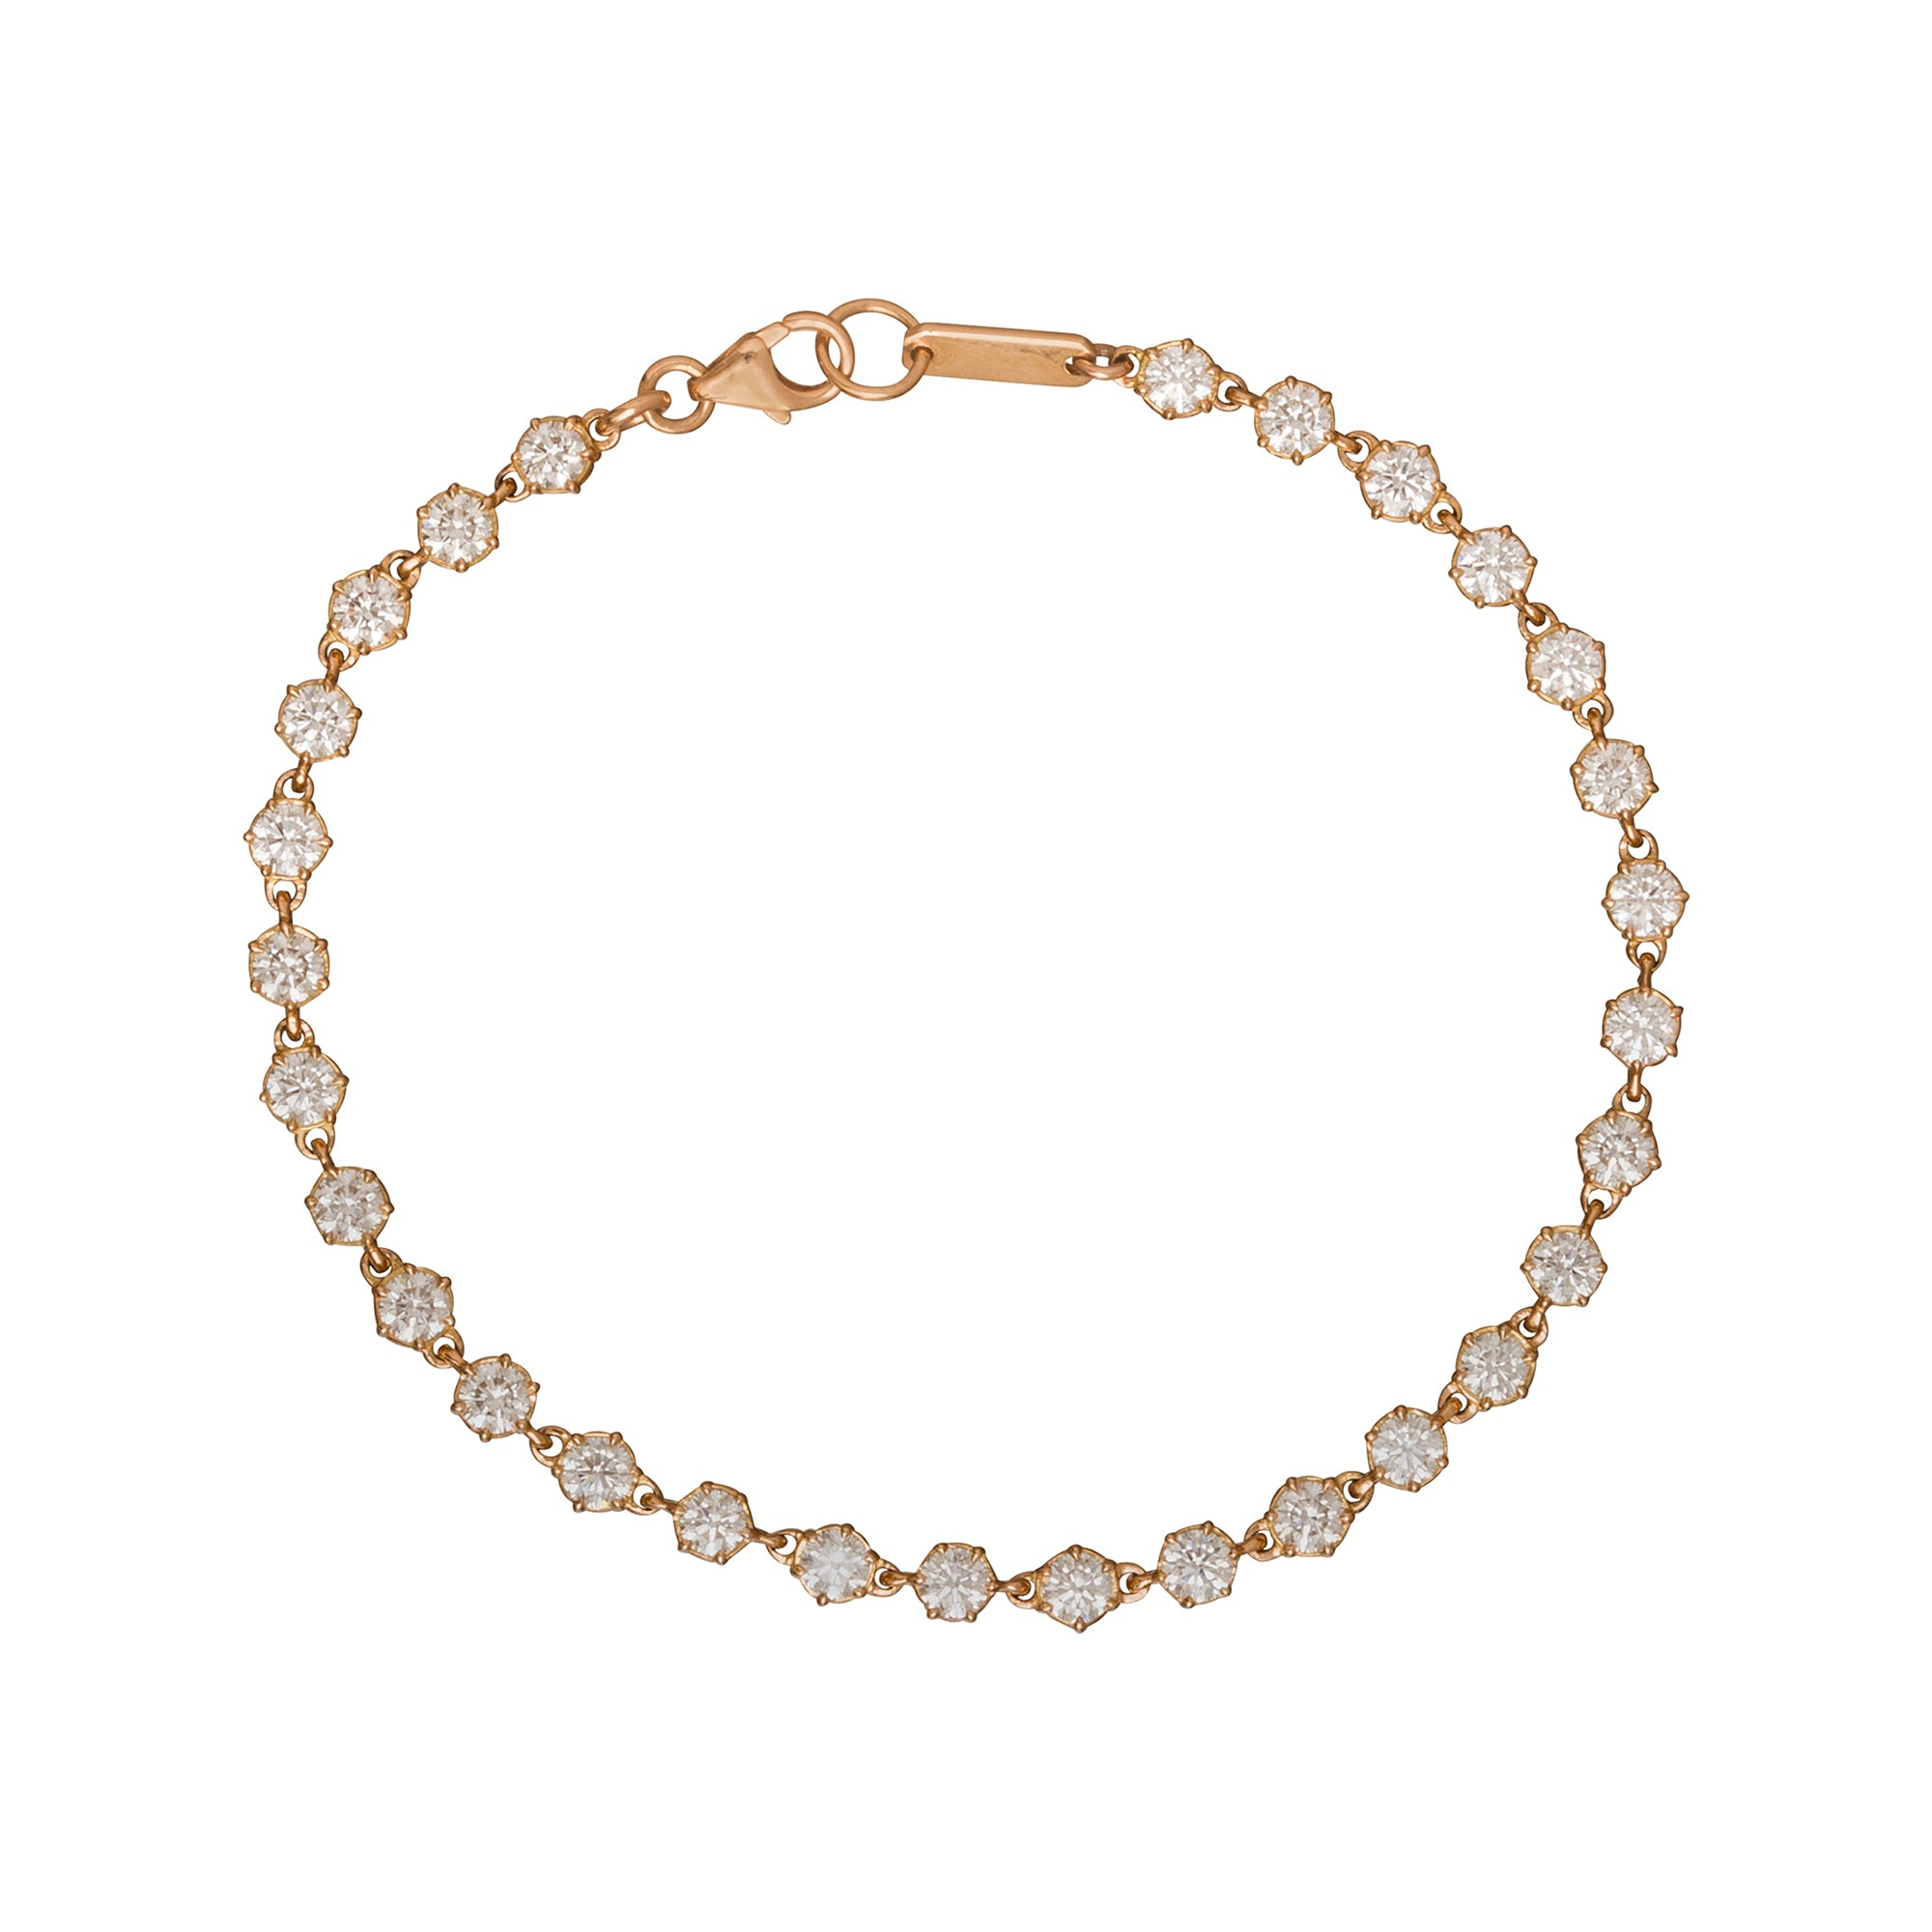 Penelope Bracelet by Jade Trau for Broken English Jewelry